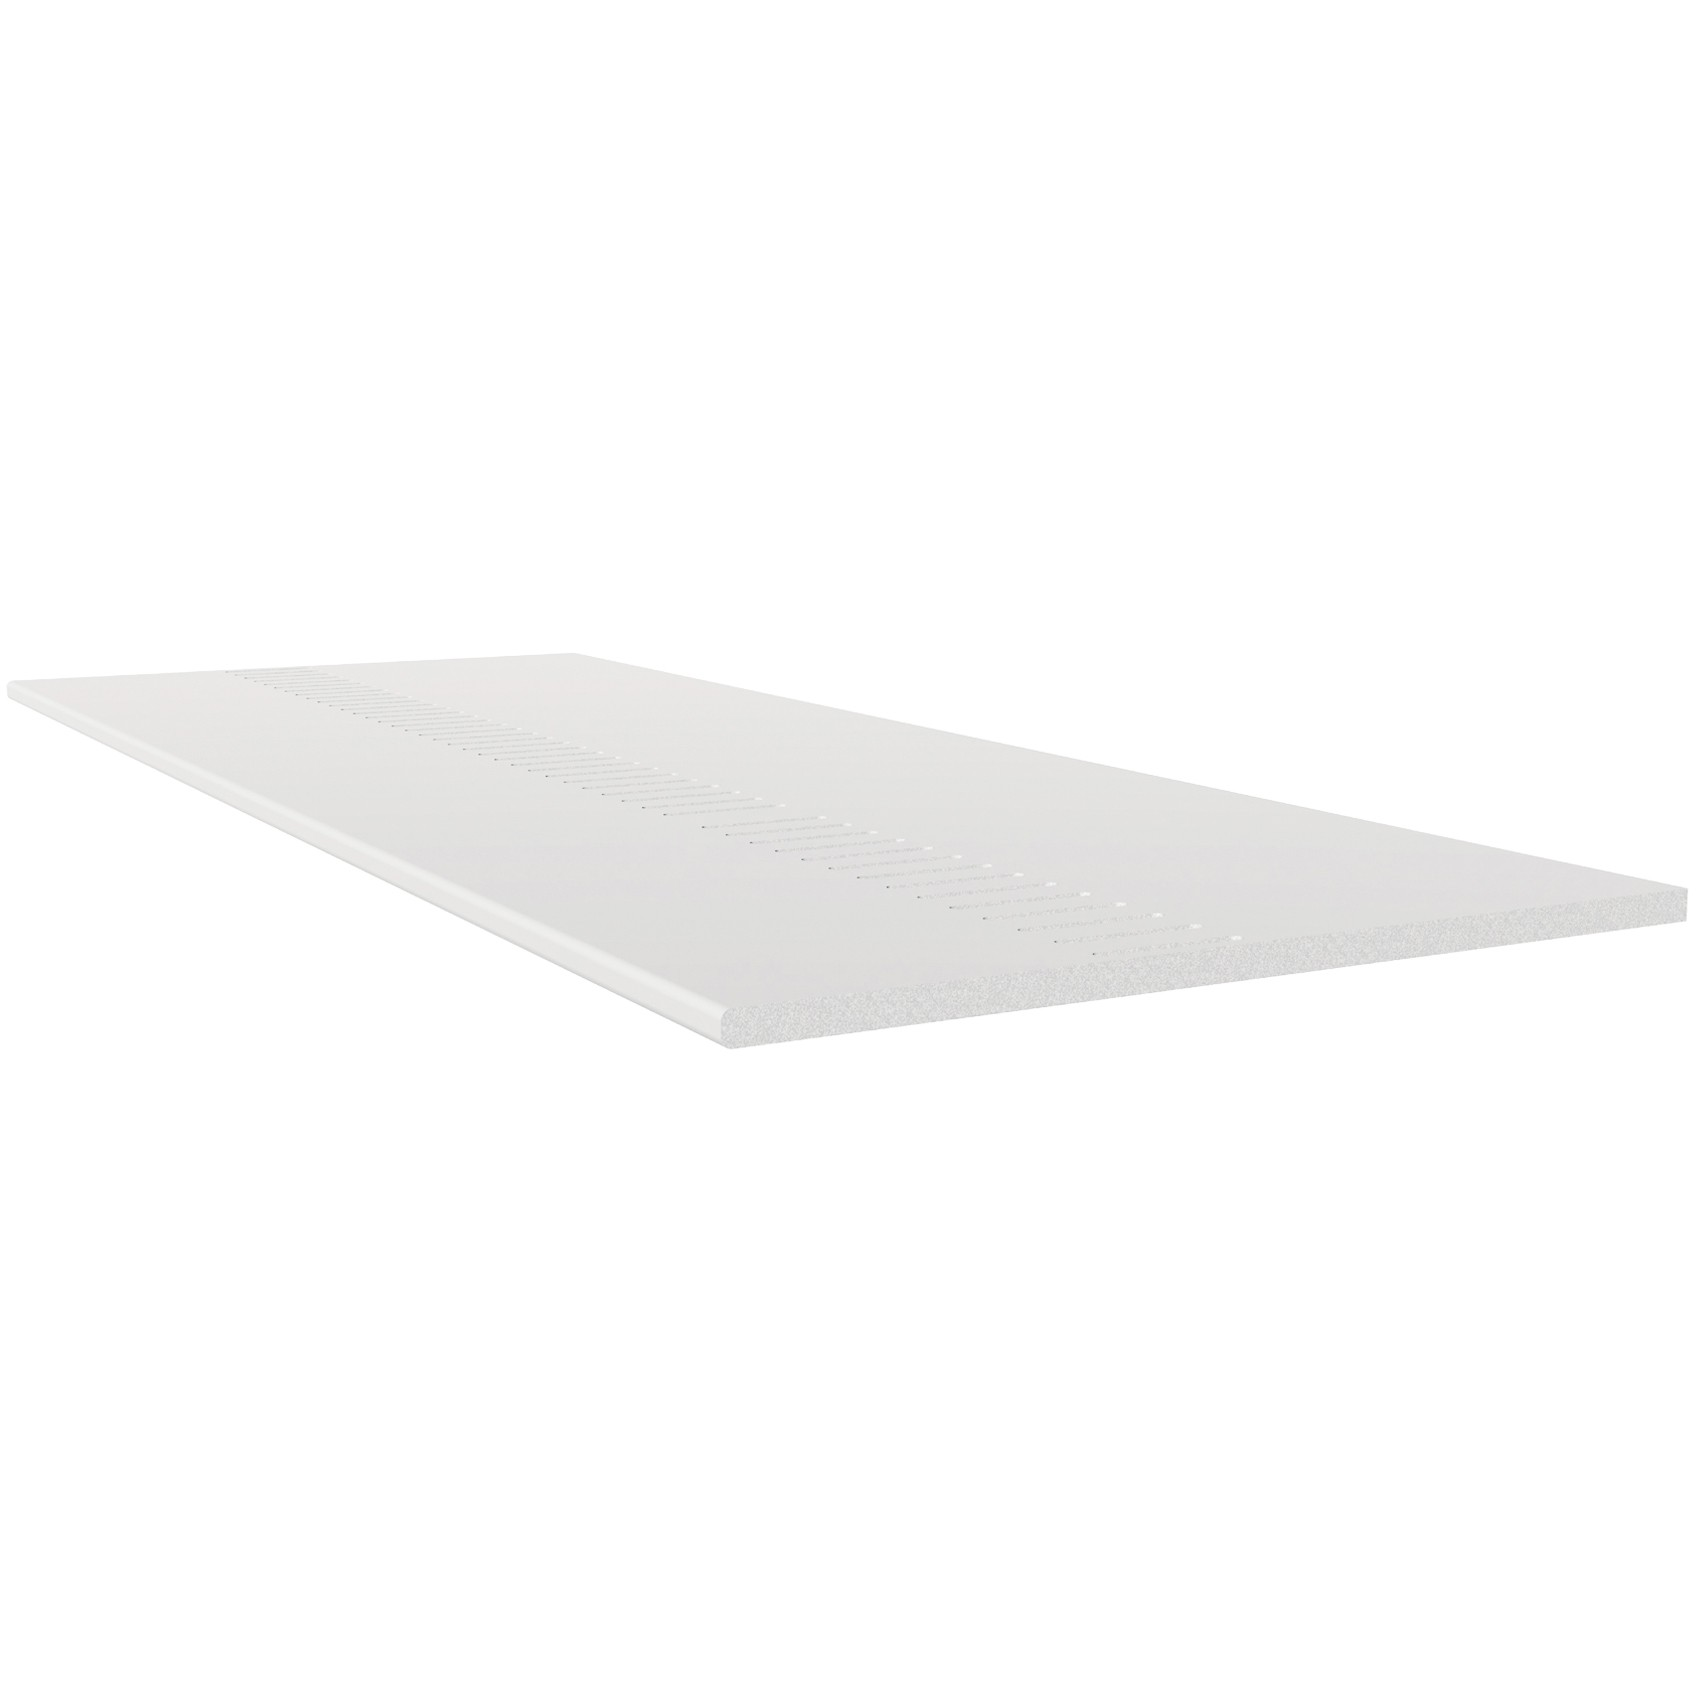 Freefoam Pre Vented 10mm Solid Soffit Board - White, 225mm, 5 metre